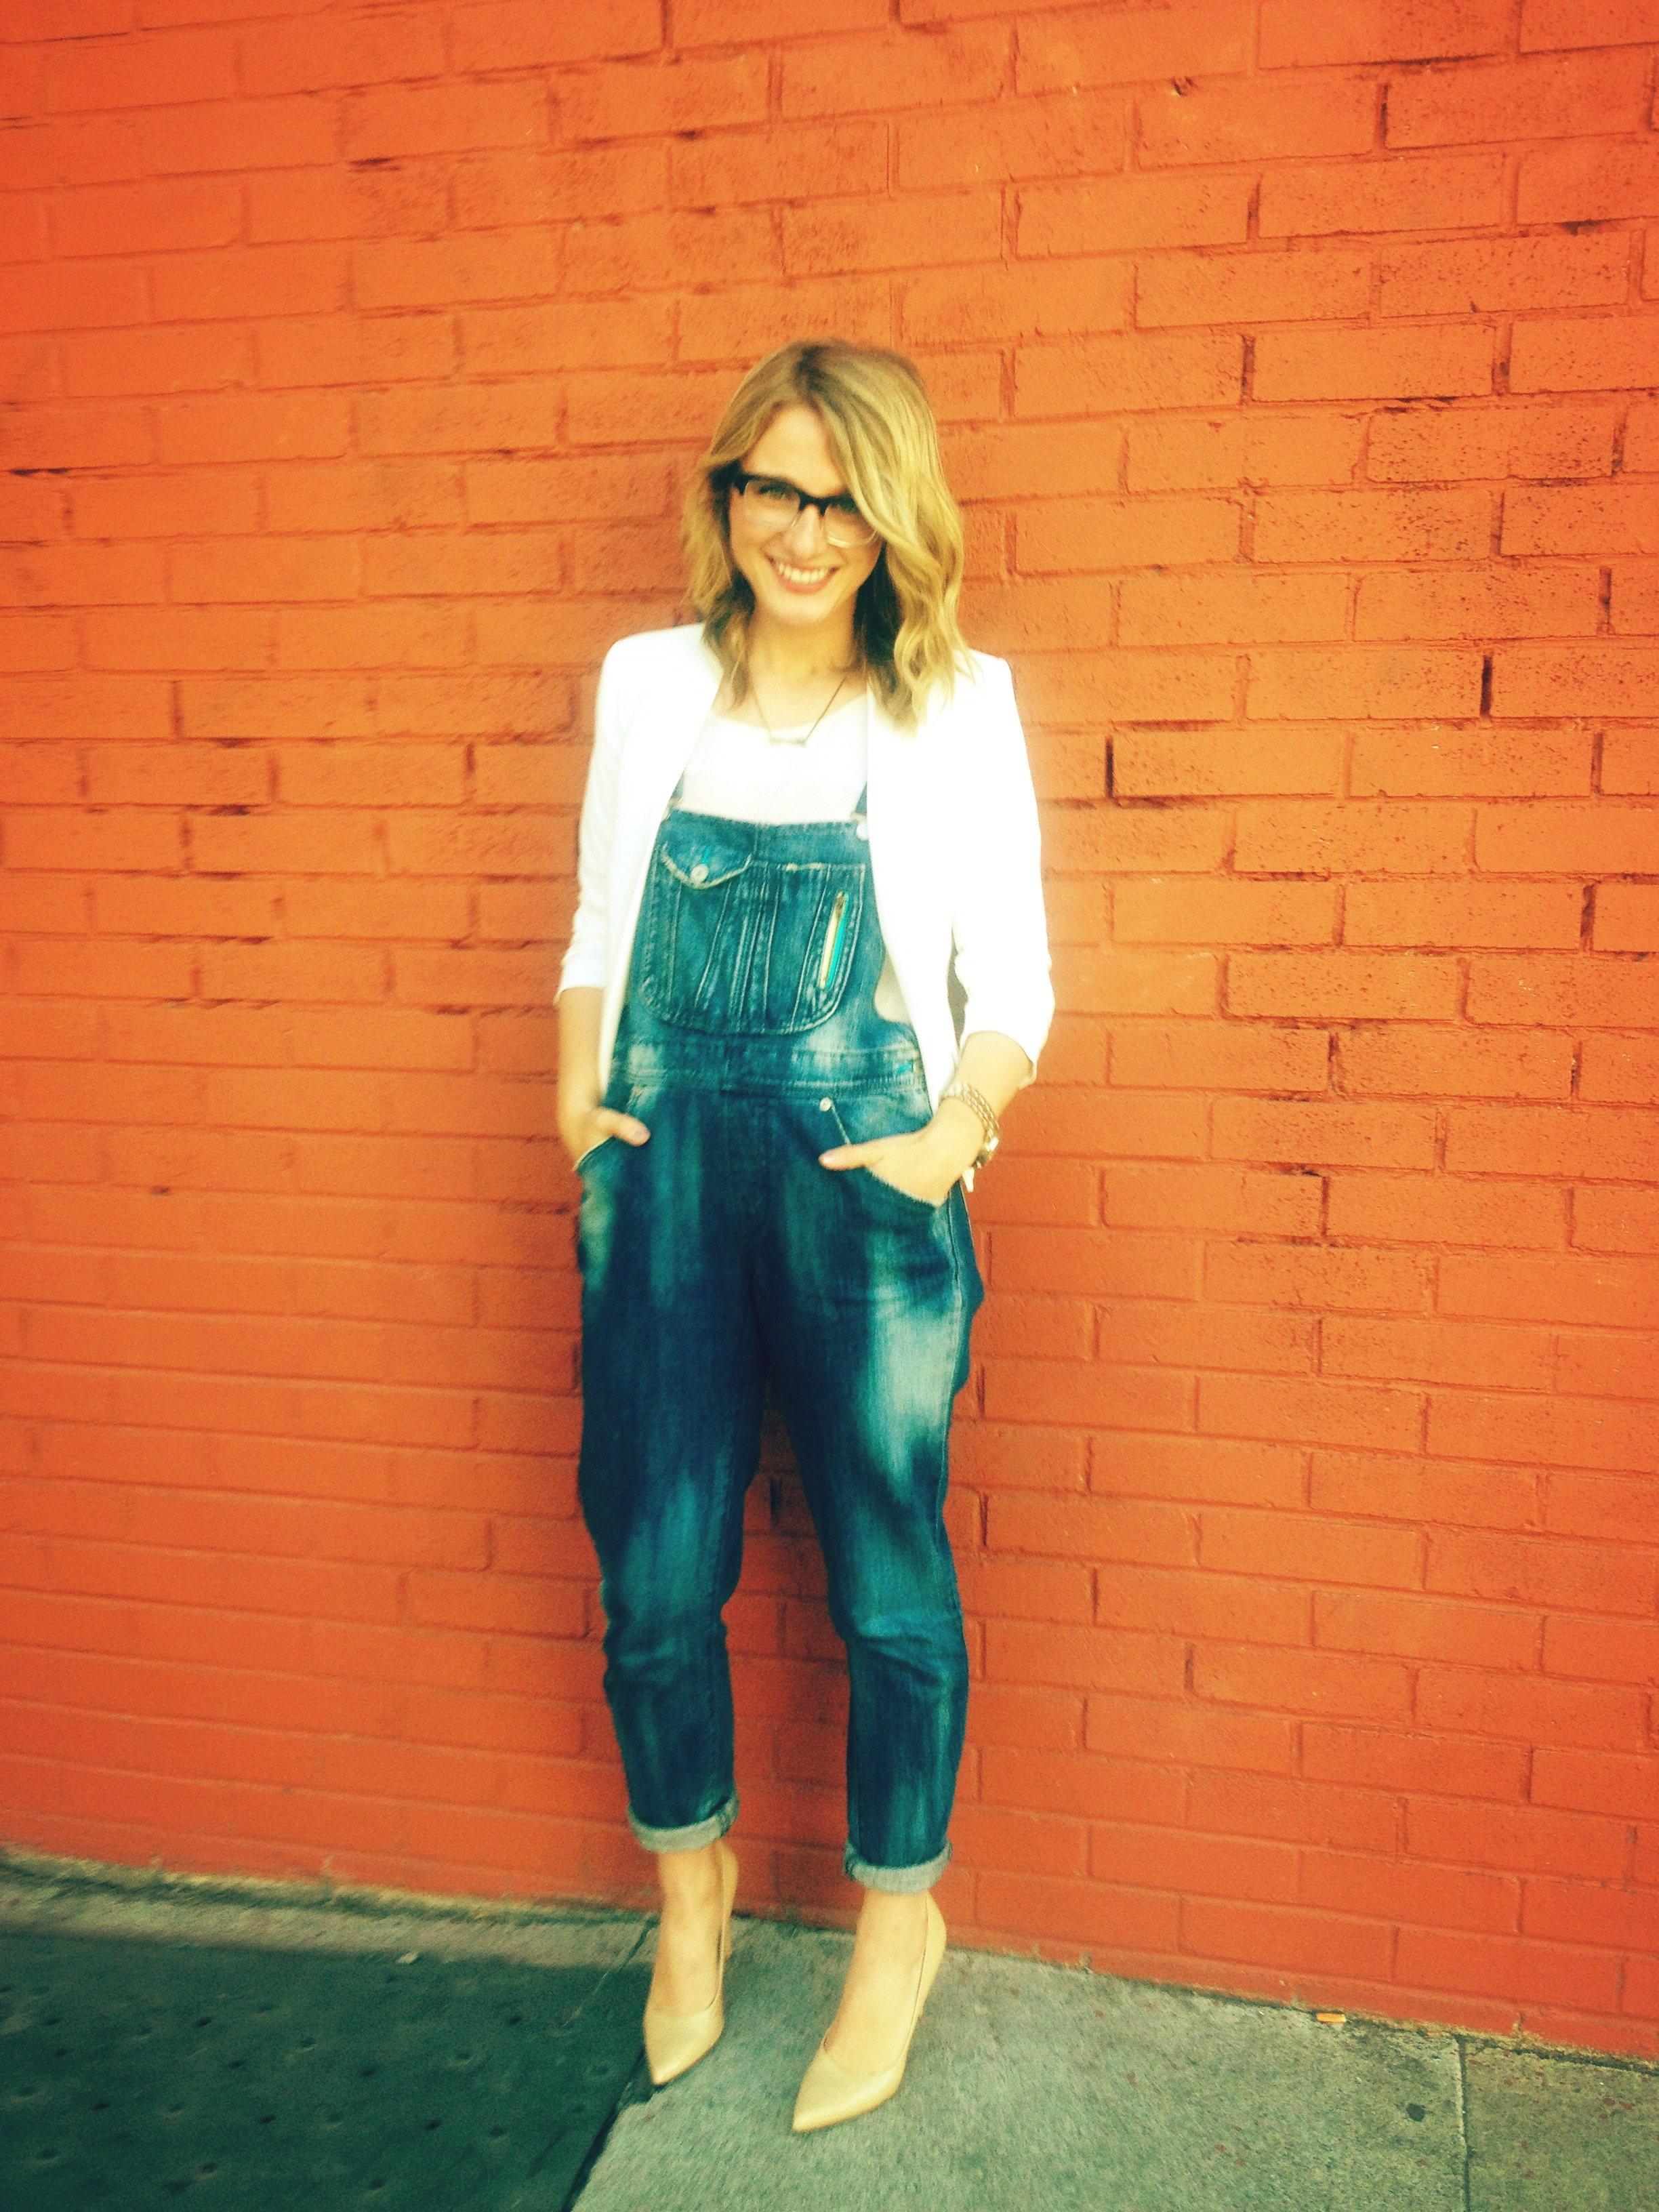 Blazer: F21 | Blouse: F21 | Overalls: Wasteland | Heels: Nine West | Rings: F21